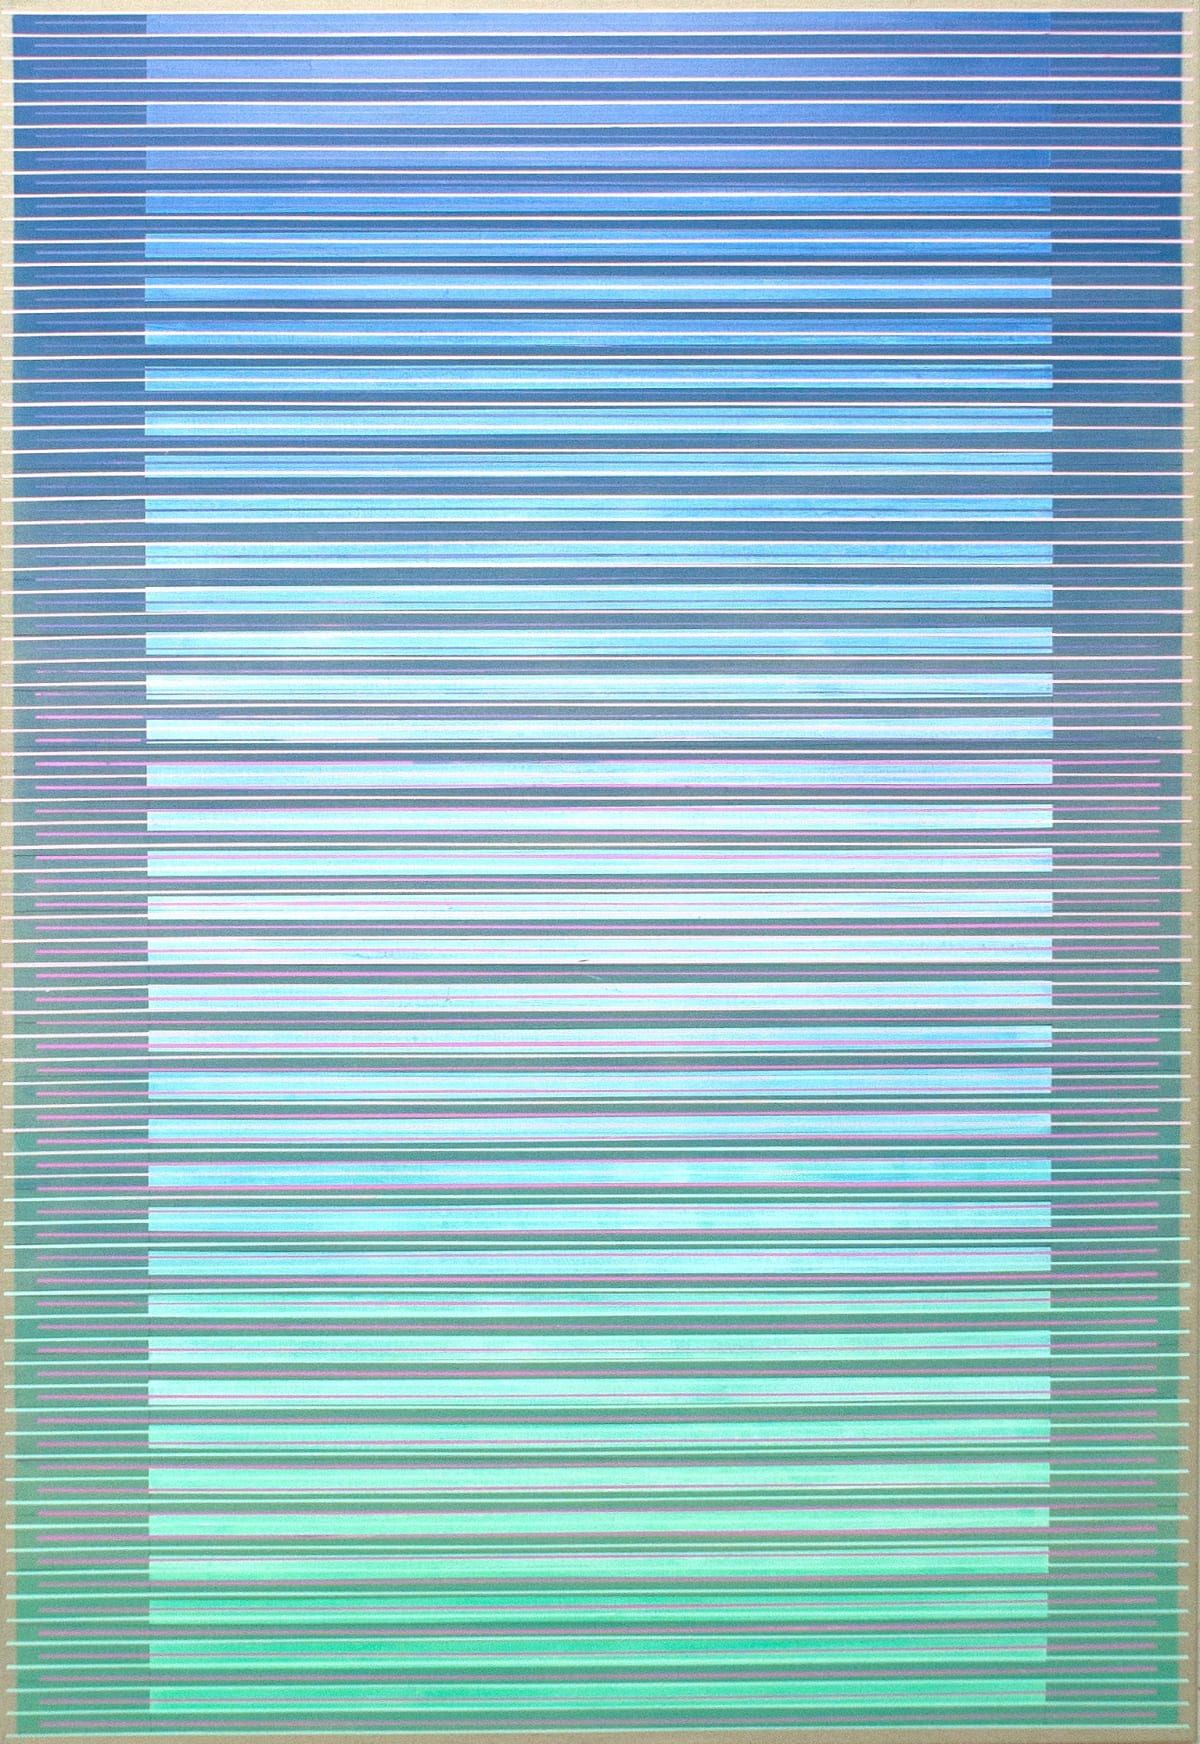 Daniel Mullen Intervening Horizons, 2017 acrylic on canvas 160 x 100 cm 63 x 39 3/8 in